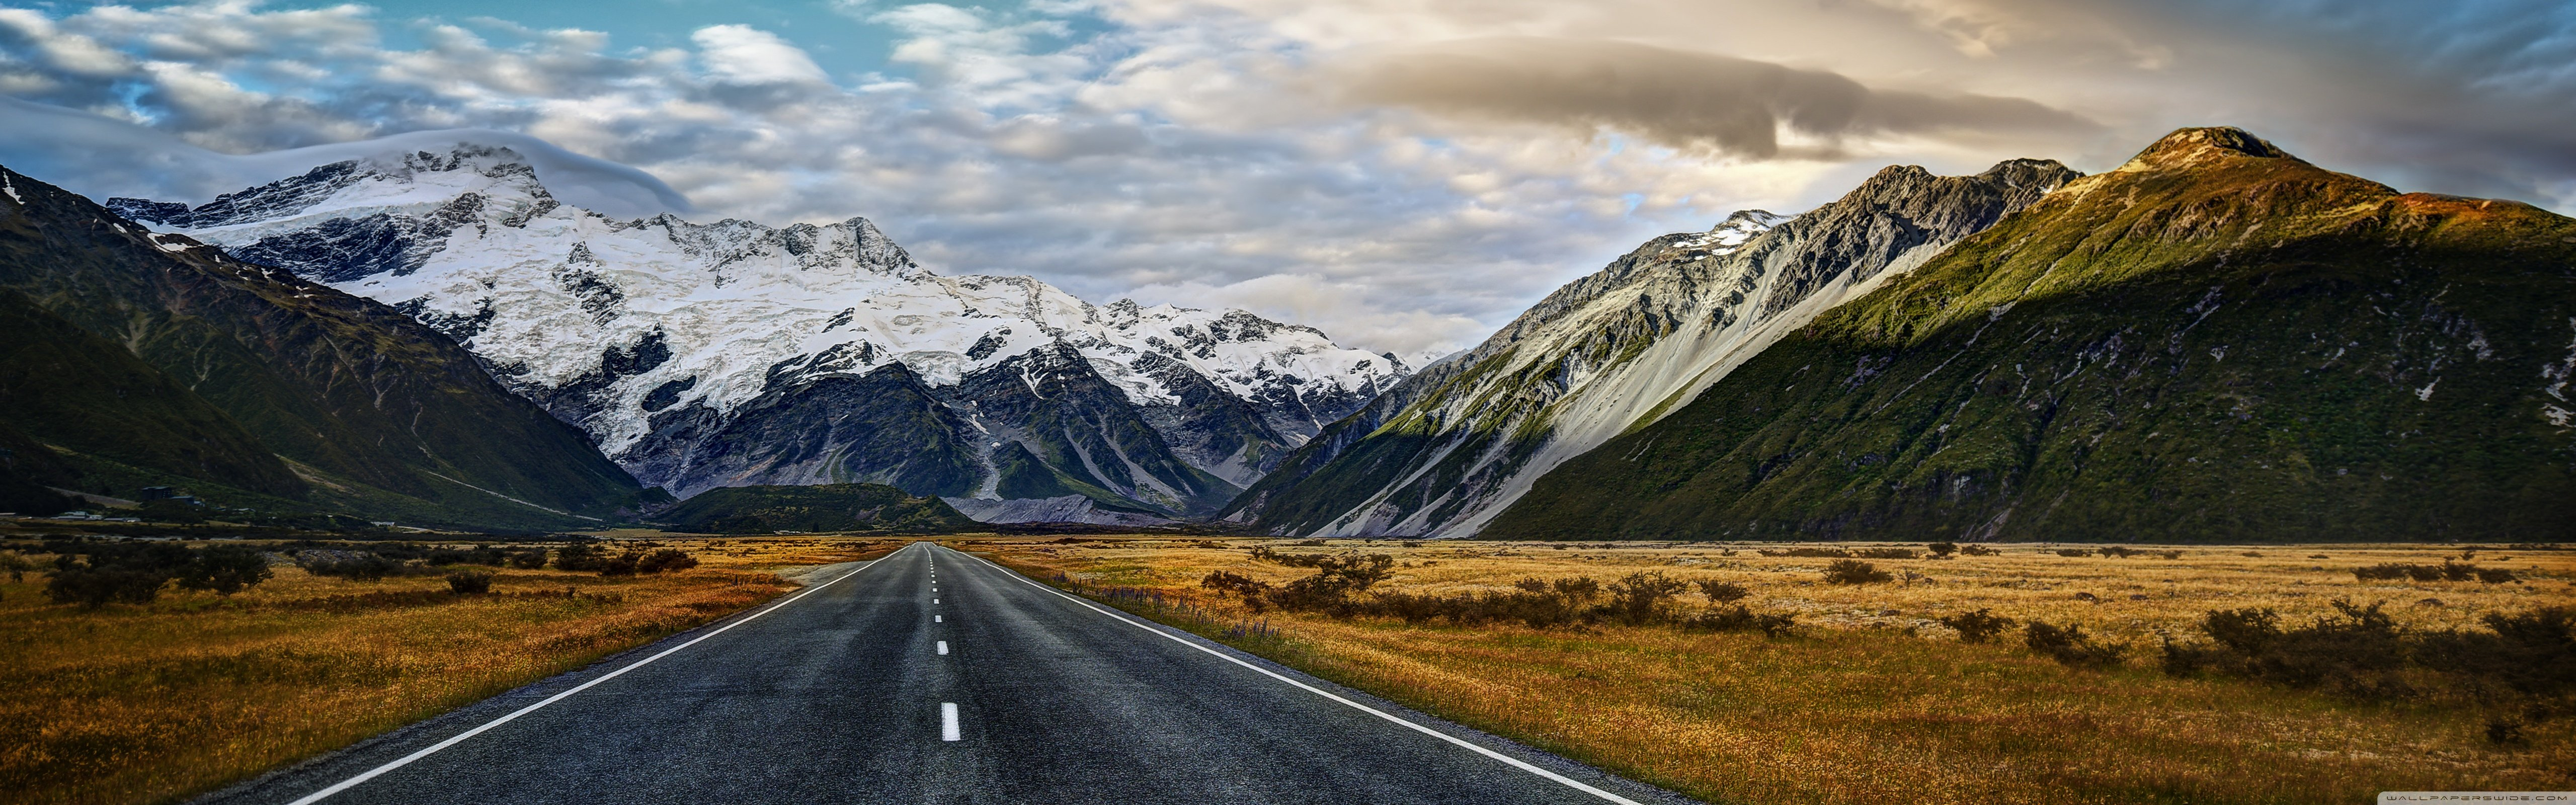 Road To Mount Cook 4K HD Desktop Wallpaper for 4K Ultra HD TV 5120x1600